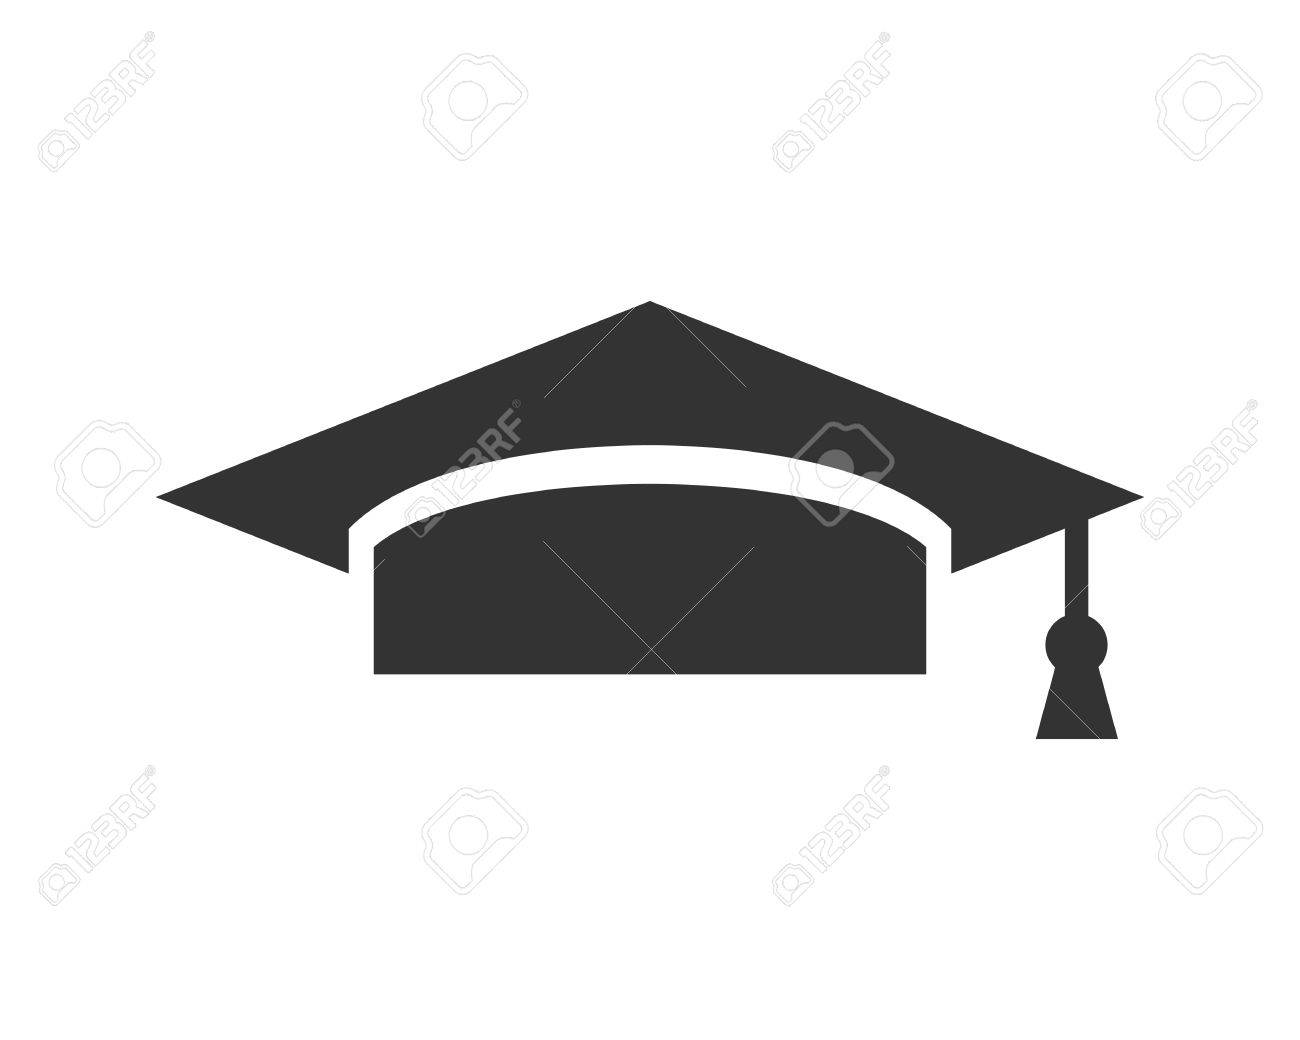 Graduation Cap Icon Royalty Free Cliparts, Vectors, And Stock ...